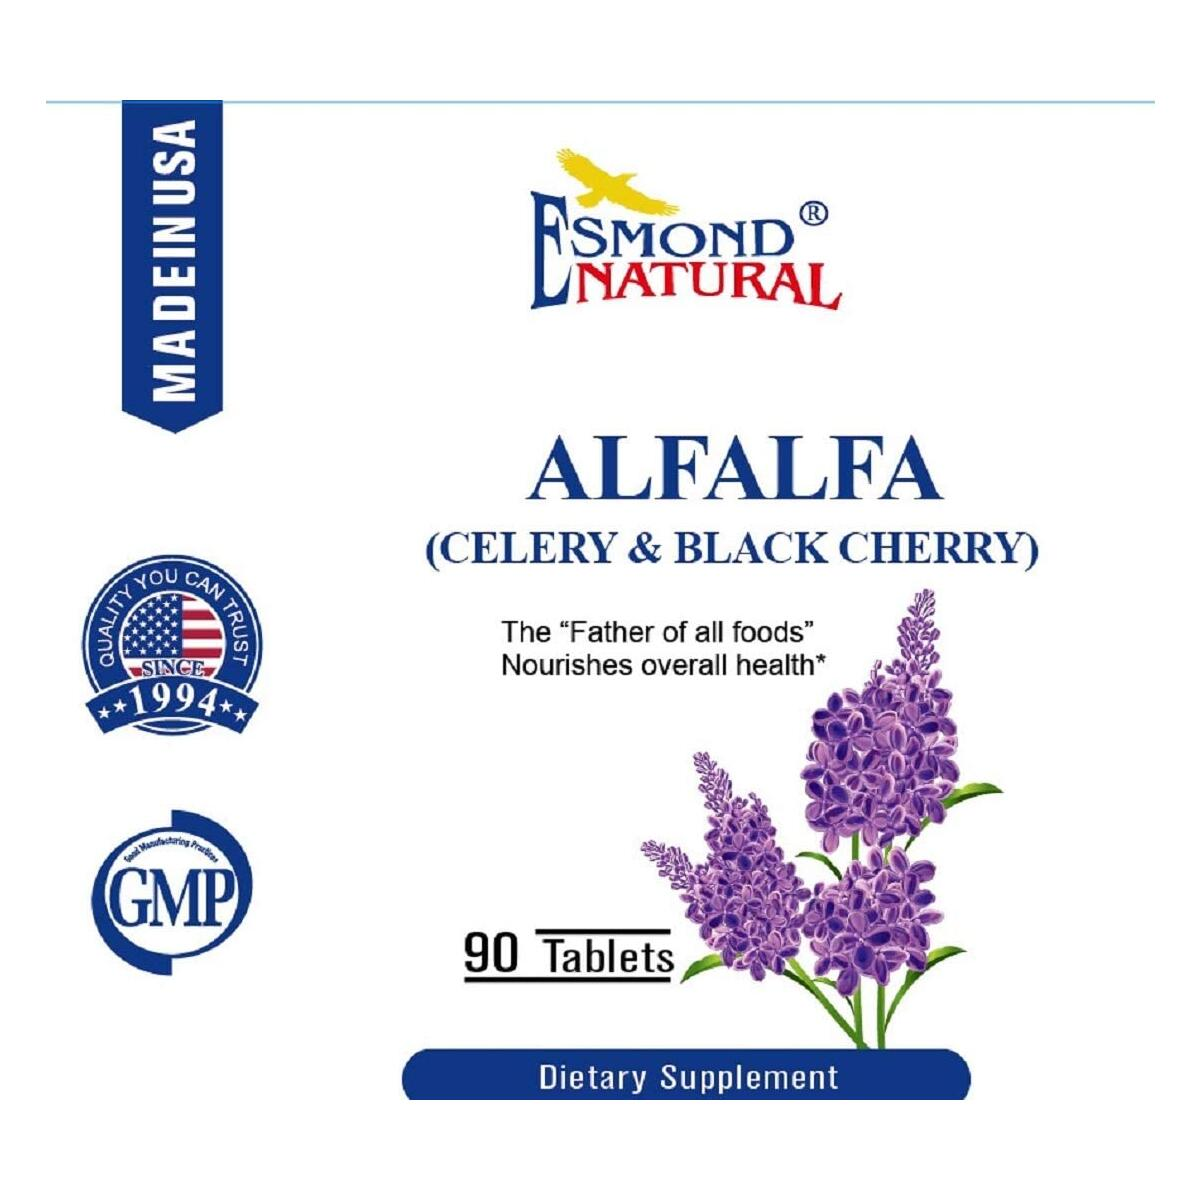 (5 Count, 25% Off) Esmond Natural: Alfalfa - Celery & Black Cherry (Nourishes Overall Health), GMP, Natural Product Assn Certified, Made in USA-1500mg, 450 Tablets